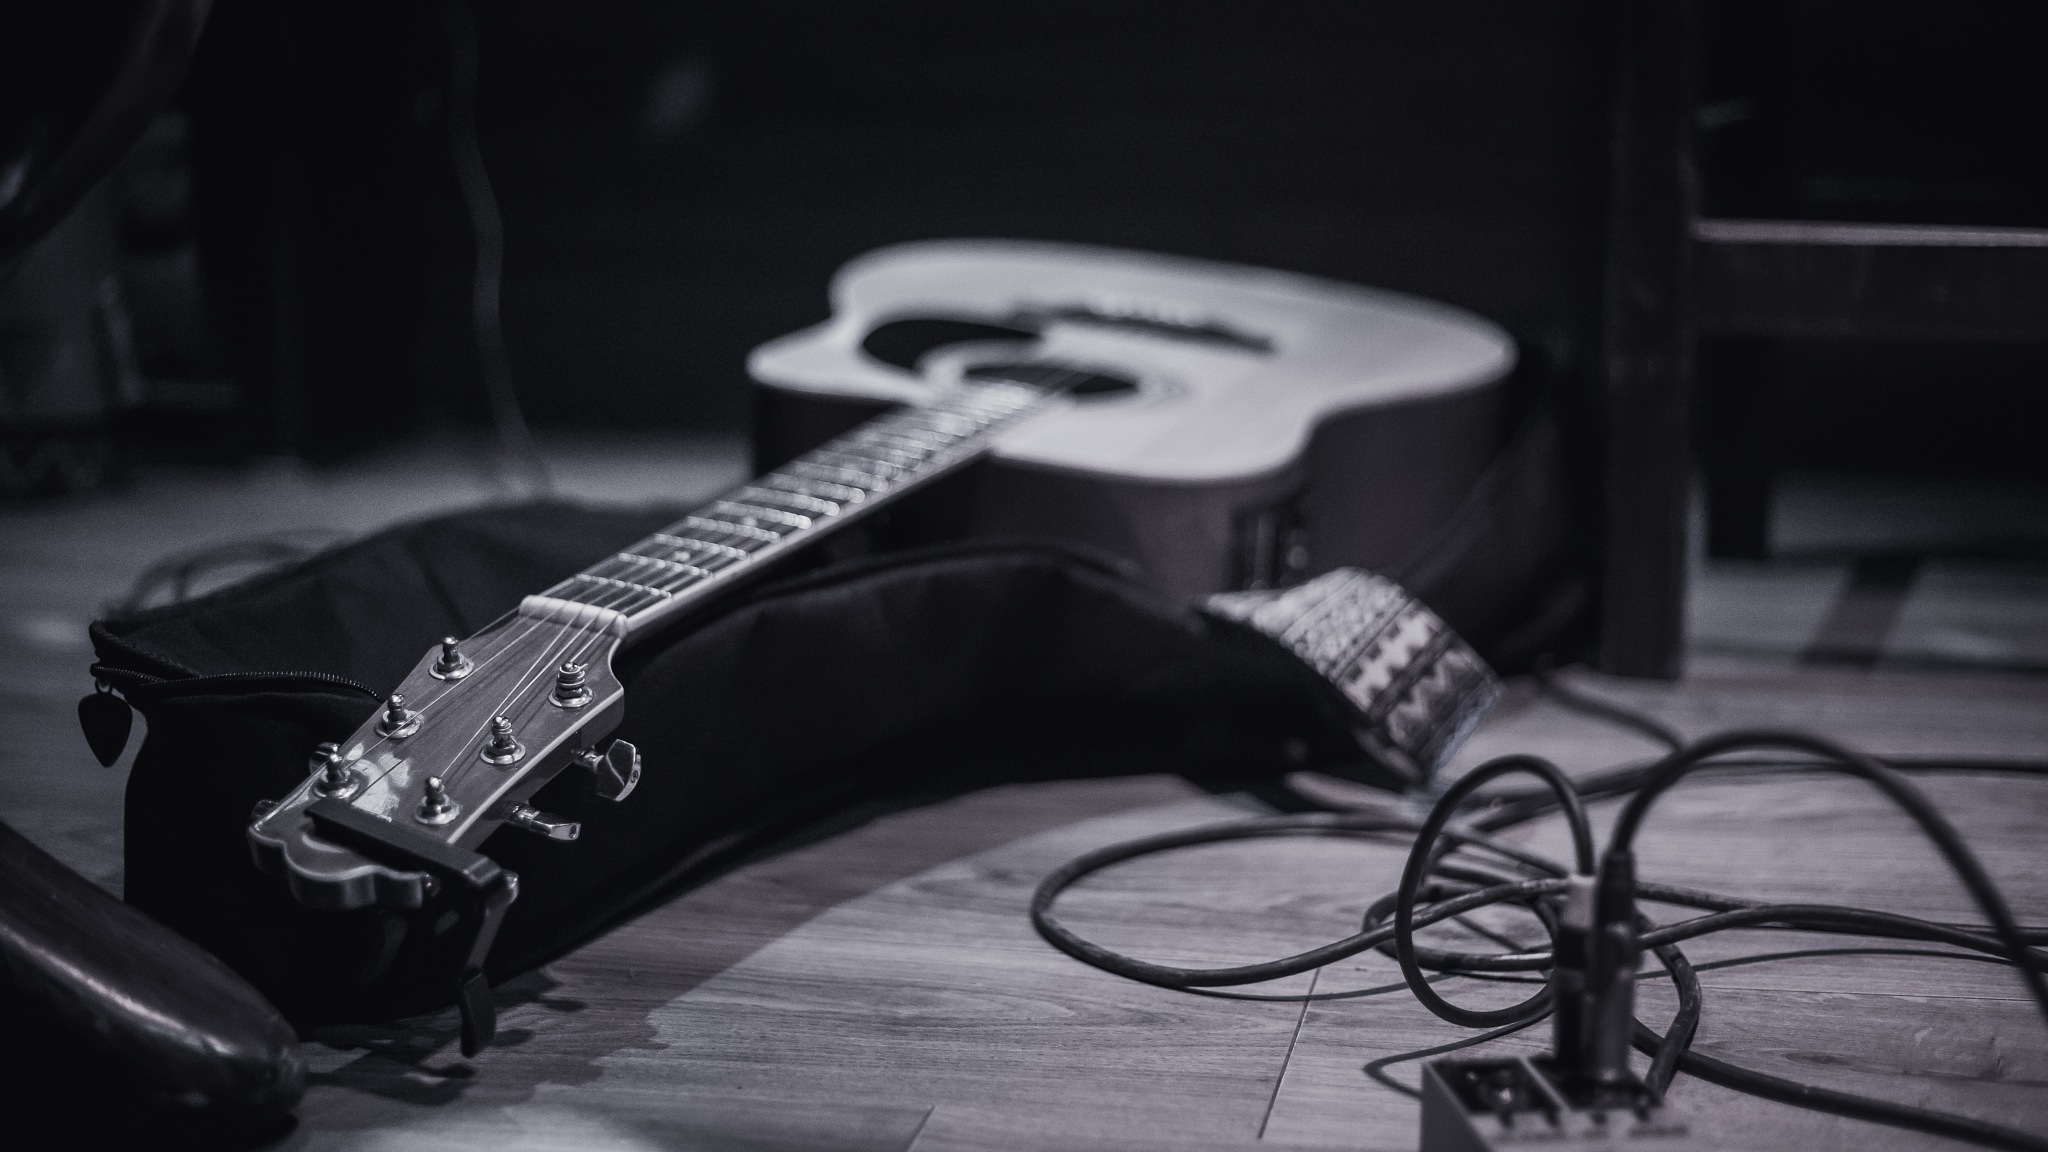 Guitar by Phantography